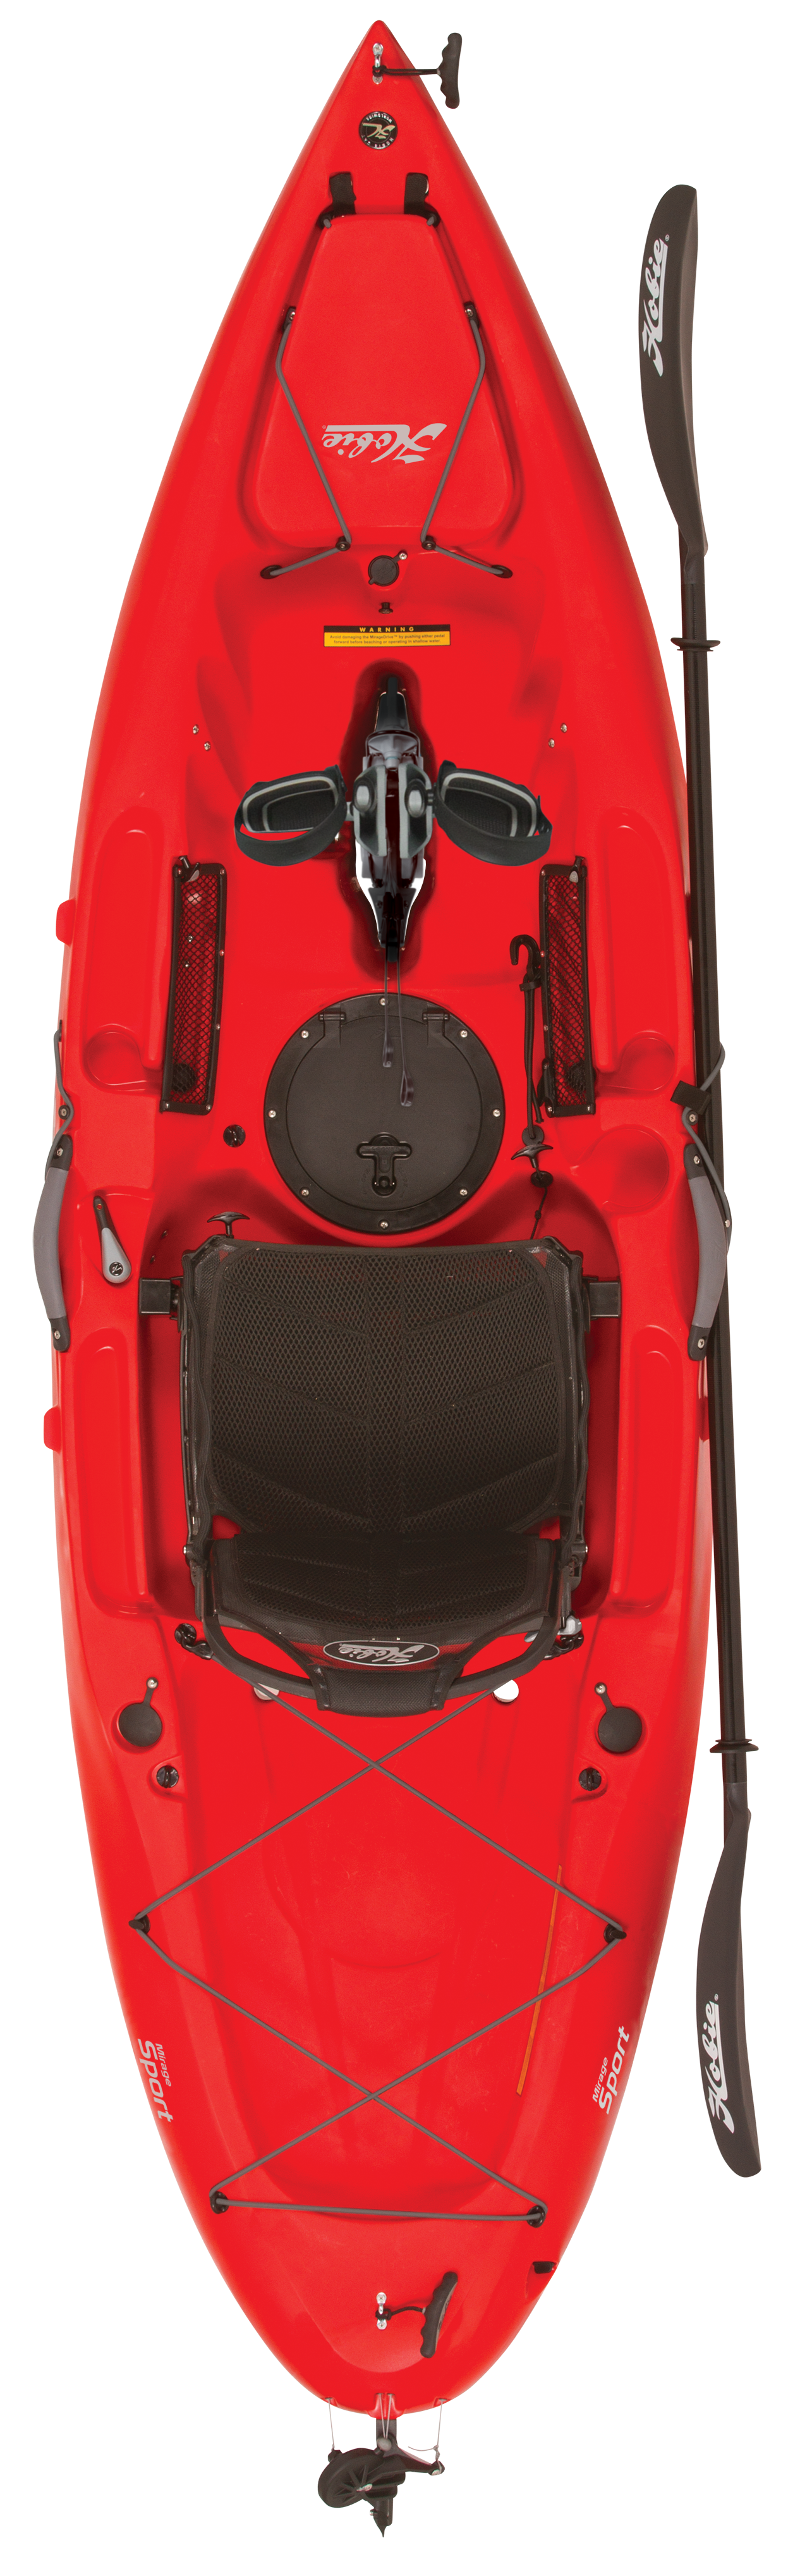 Sport_studio_red_topview_2018_full_YLtQBx3.png